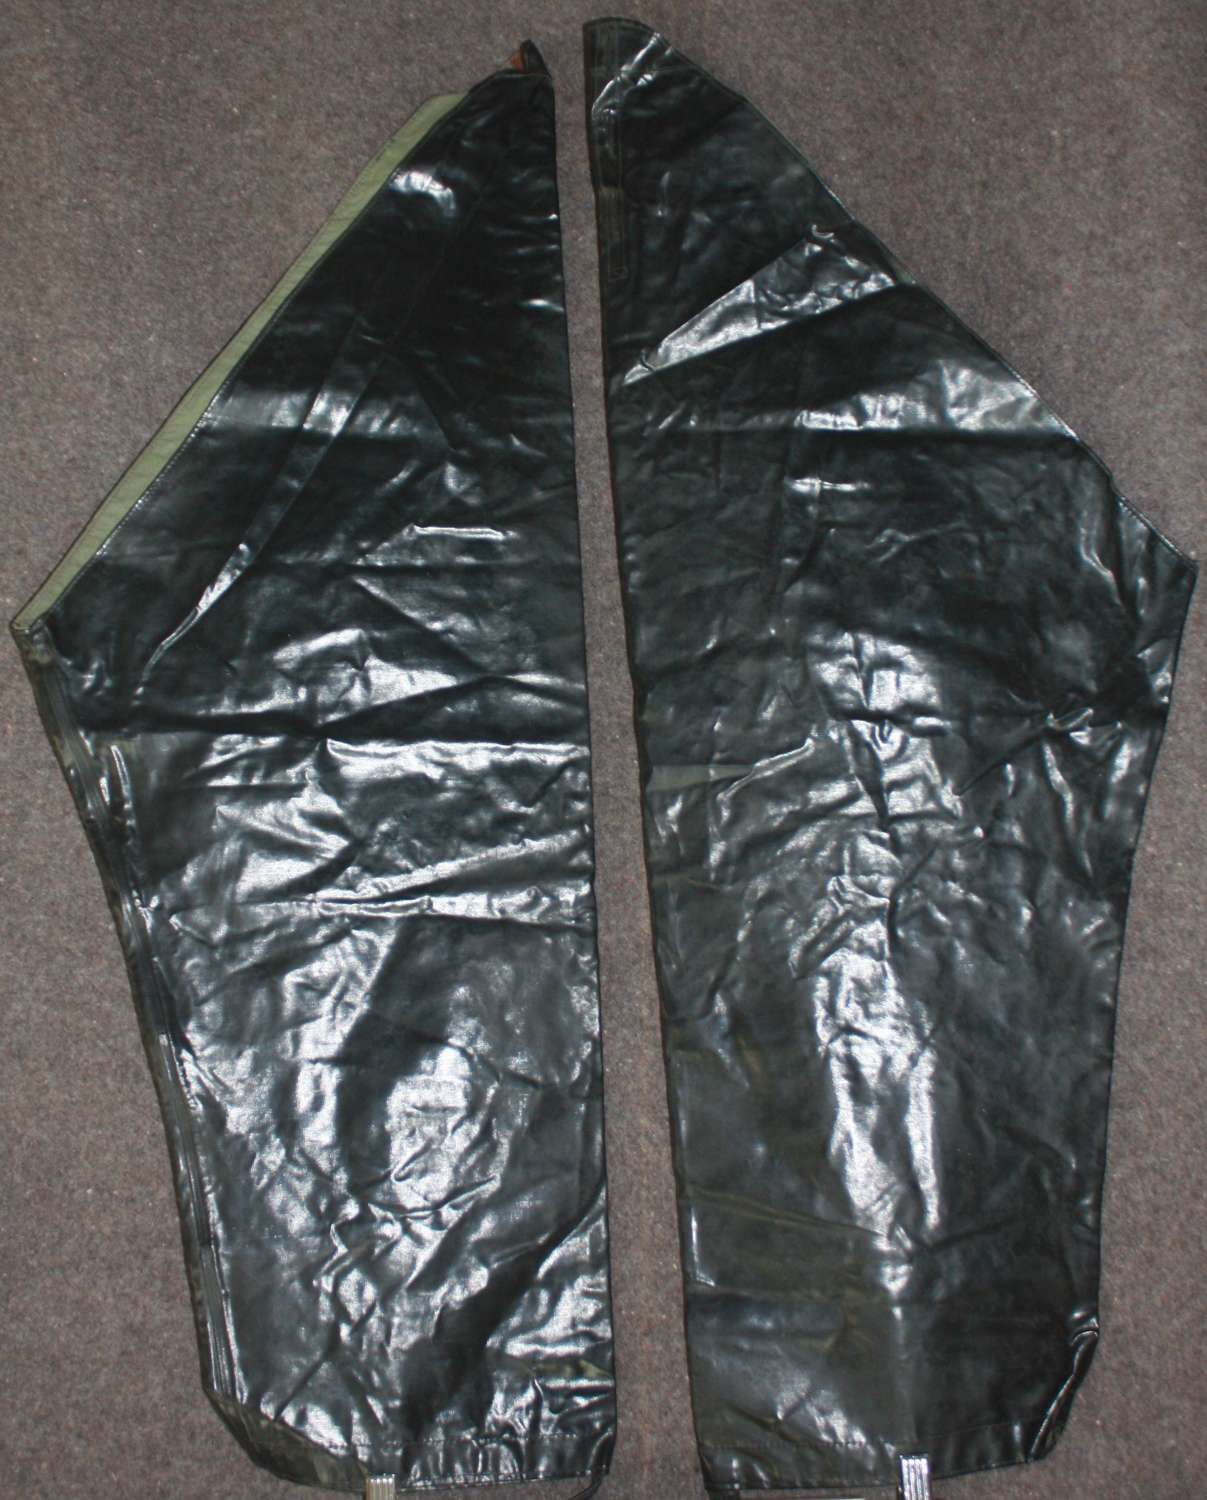 A PAIR OF THE AFS / NFS WATERPROOF LEGGINGS WWII PERIOD